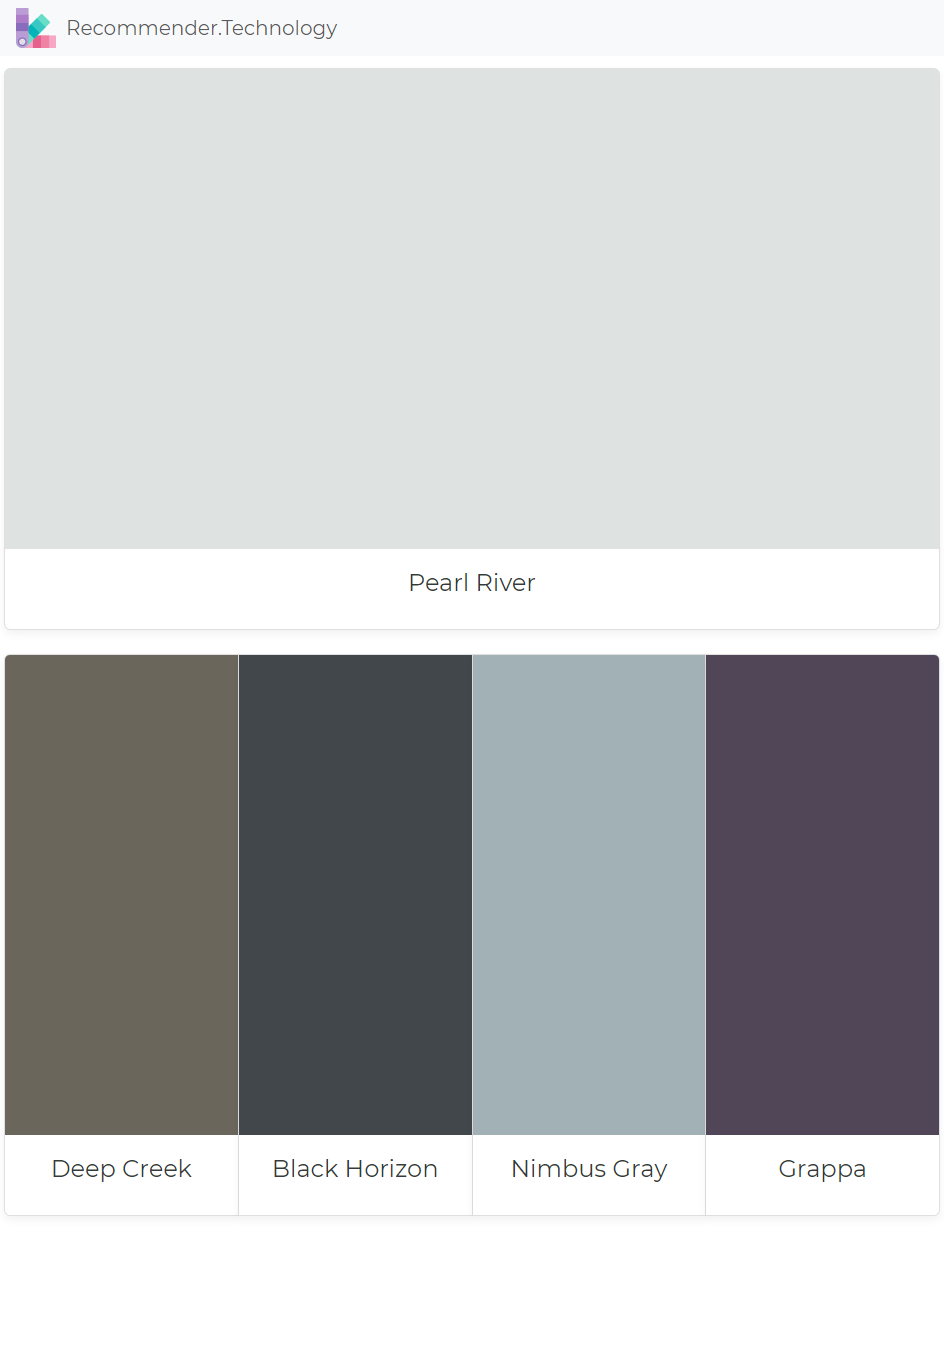 Pearl River Deep Creek Black Horizon Nimbus Gray Grappa Paint Color Palettes Paint Colors Benjamin Moore Perfect Paint Color